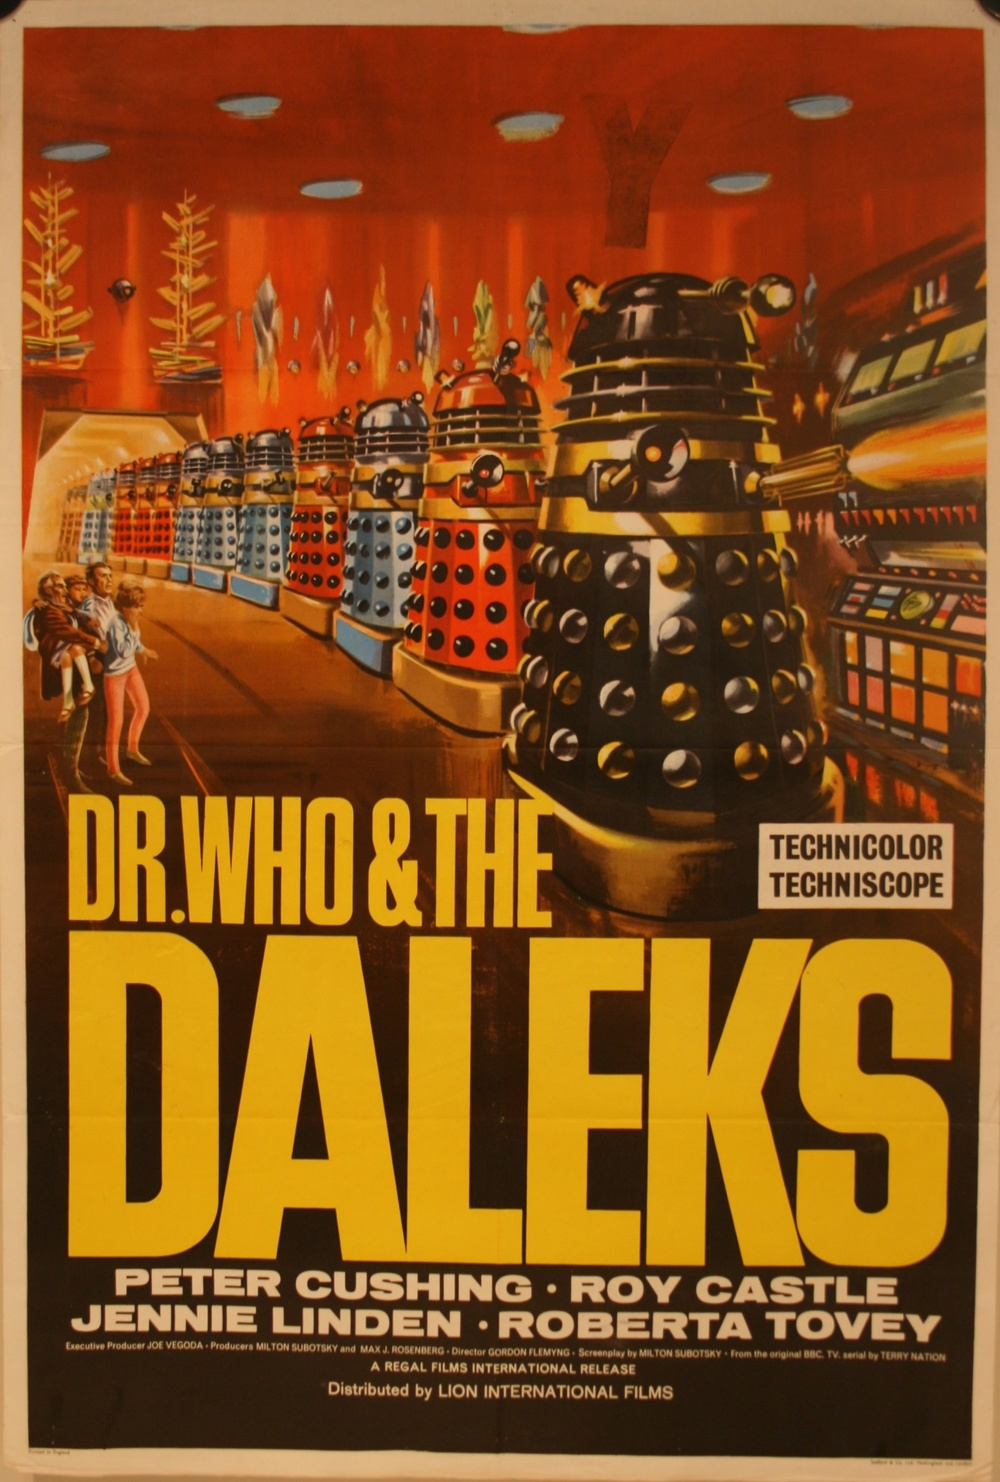 UK One-Sheet Poster